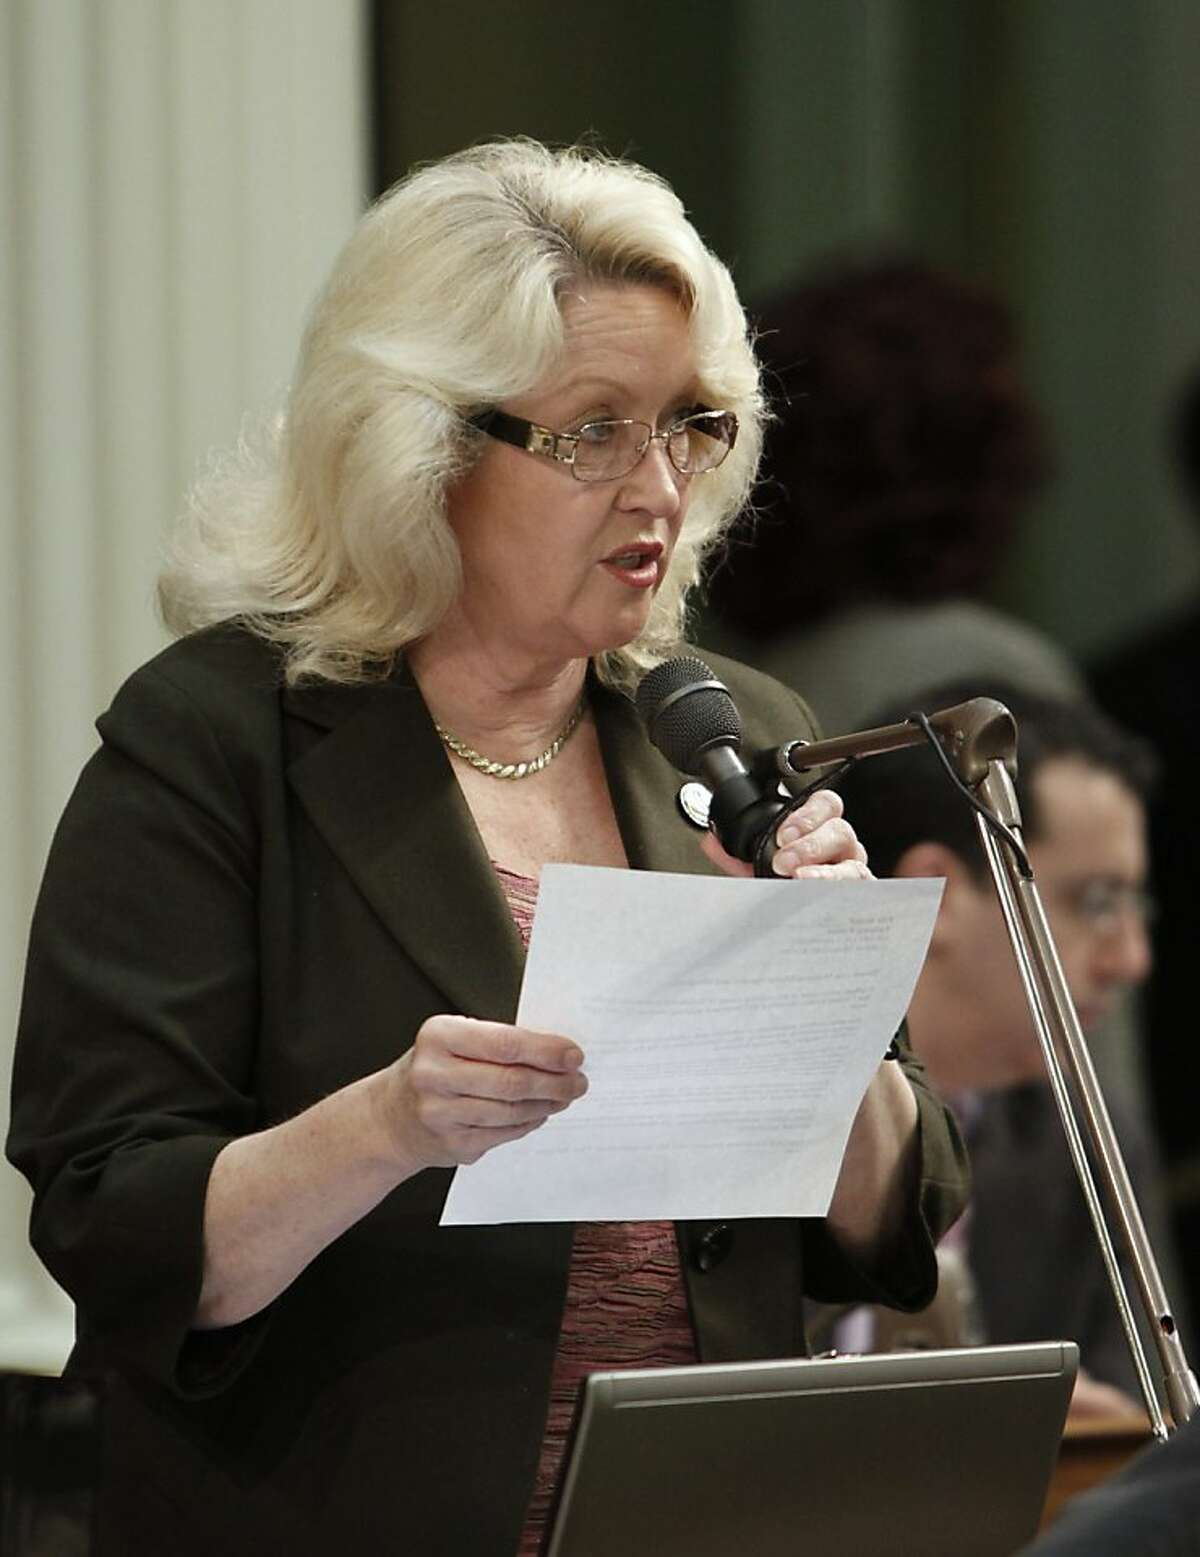 Assemblywoman Connie Conway, R-Tulare, urged passage of a measure that would require Californians to install carbon monoxide monitors if their home has an attached garage or fireplace, during the Assembly session at the Capitol in Sacramento, Calif., Monday, April 12, 2010. The measure, by state Sen. Alan Lowenthal, D-Long Beach, was approved by a 47-19 vote and sent to the Senate.(AP Photo/Rich Pedroncelli) Ran on: 02-02-2011 Connie Conway Ran on: 02-02-2011 Connie Conway Ran on: 06-30-2011 Assembly Republican leader Connie Conway estimates that an average family will save $1,000.